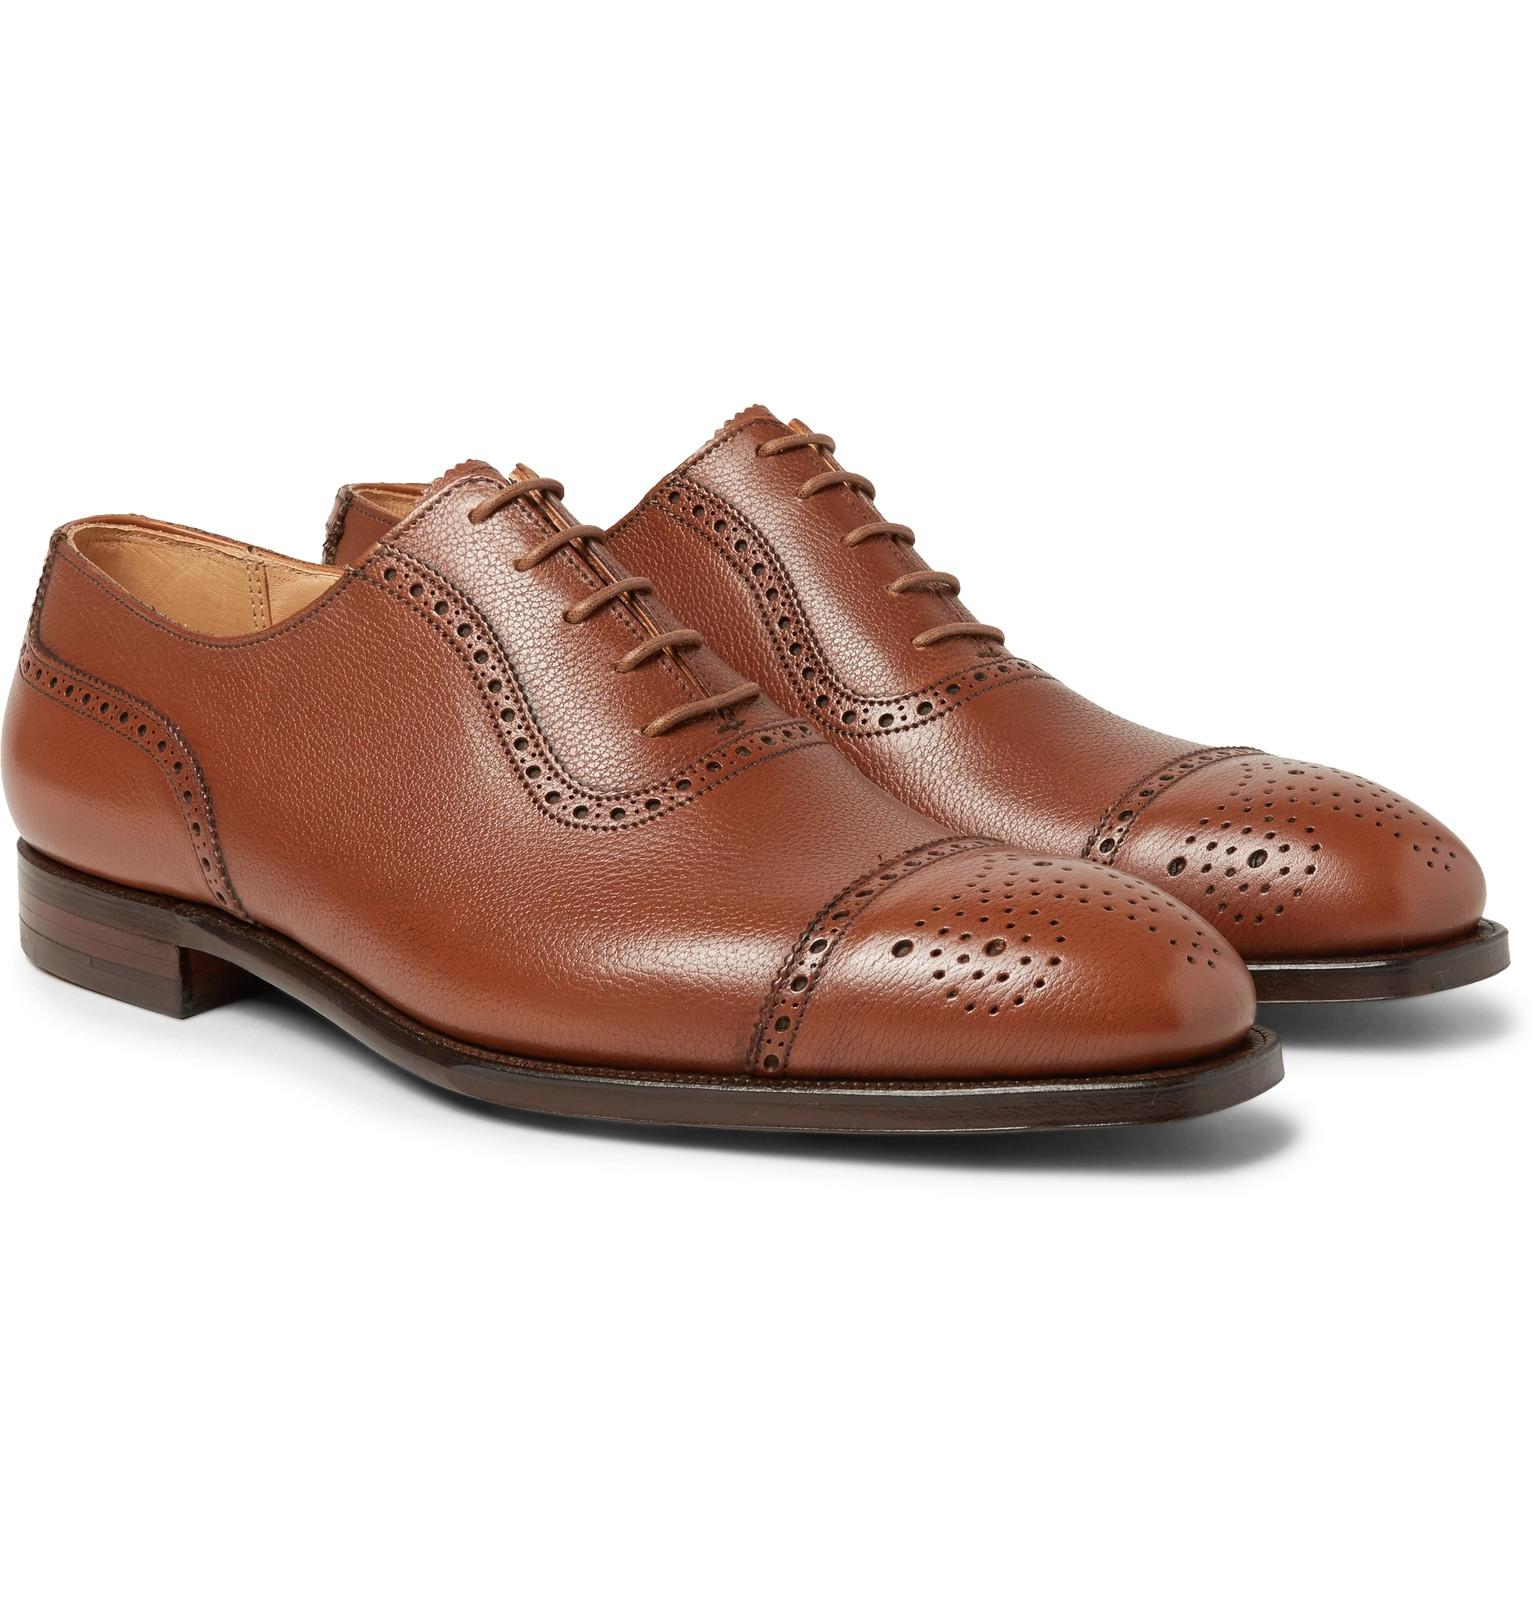 Henry Pebble-grain Leather Wingtip Brogues - Dark brownGeorge Cleverley